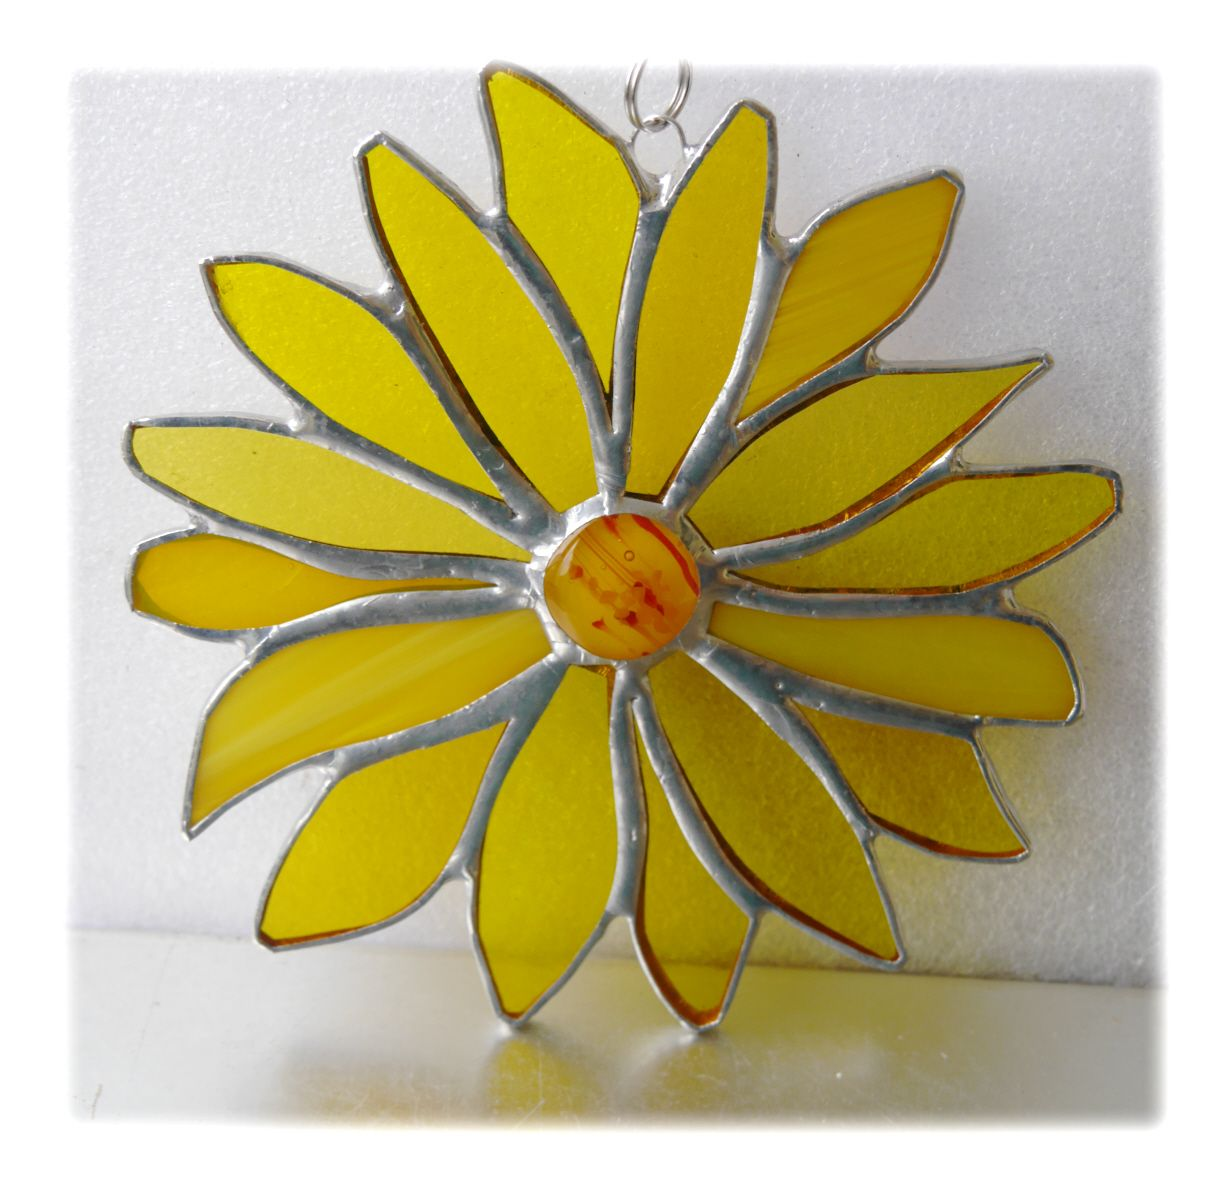 Yellow 16 petal Flower 001 #1905 FREE 17.50